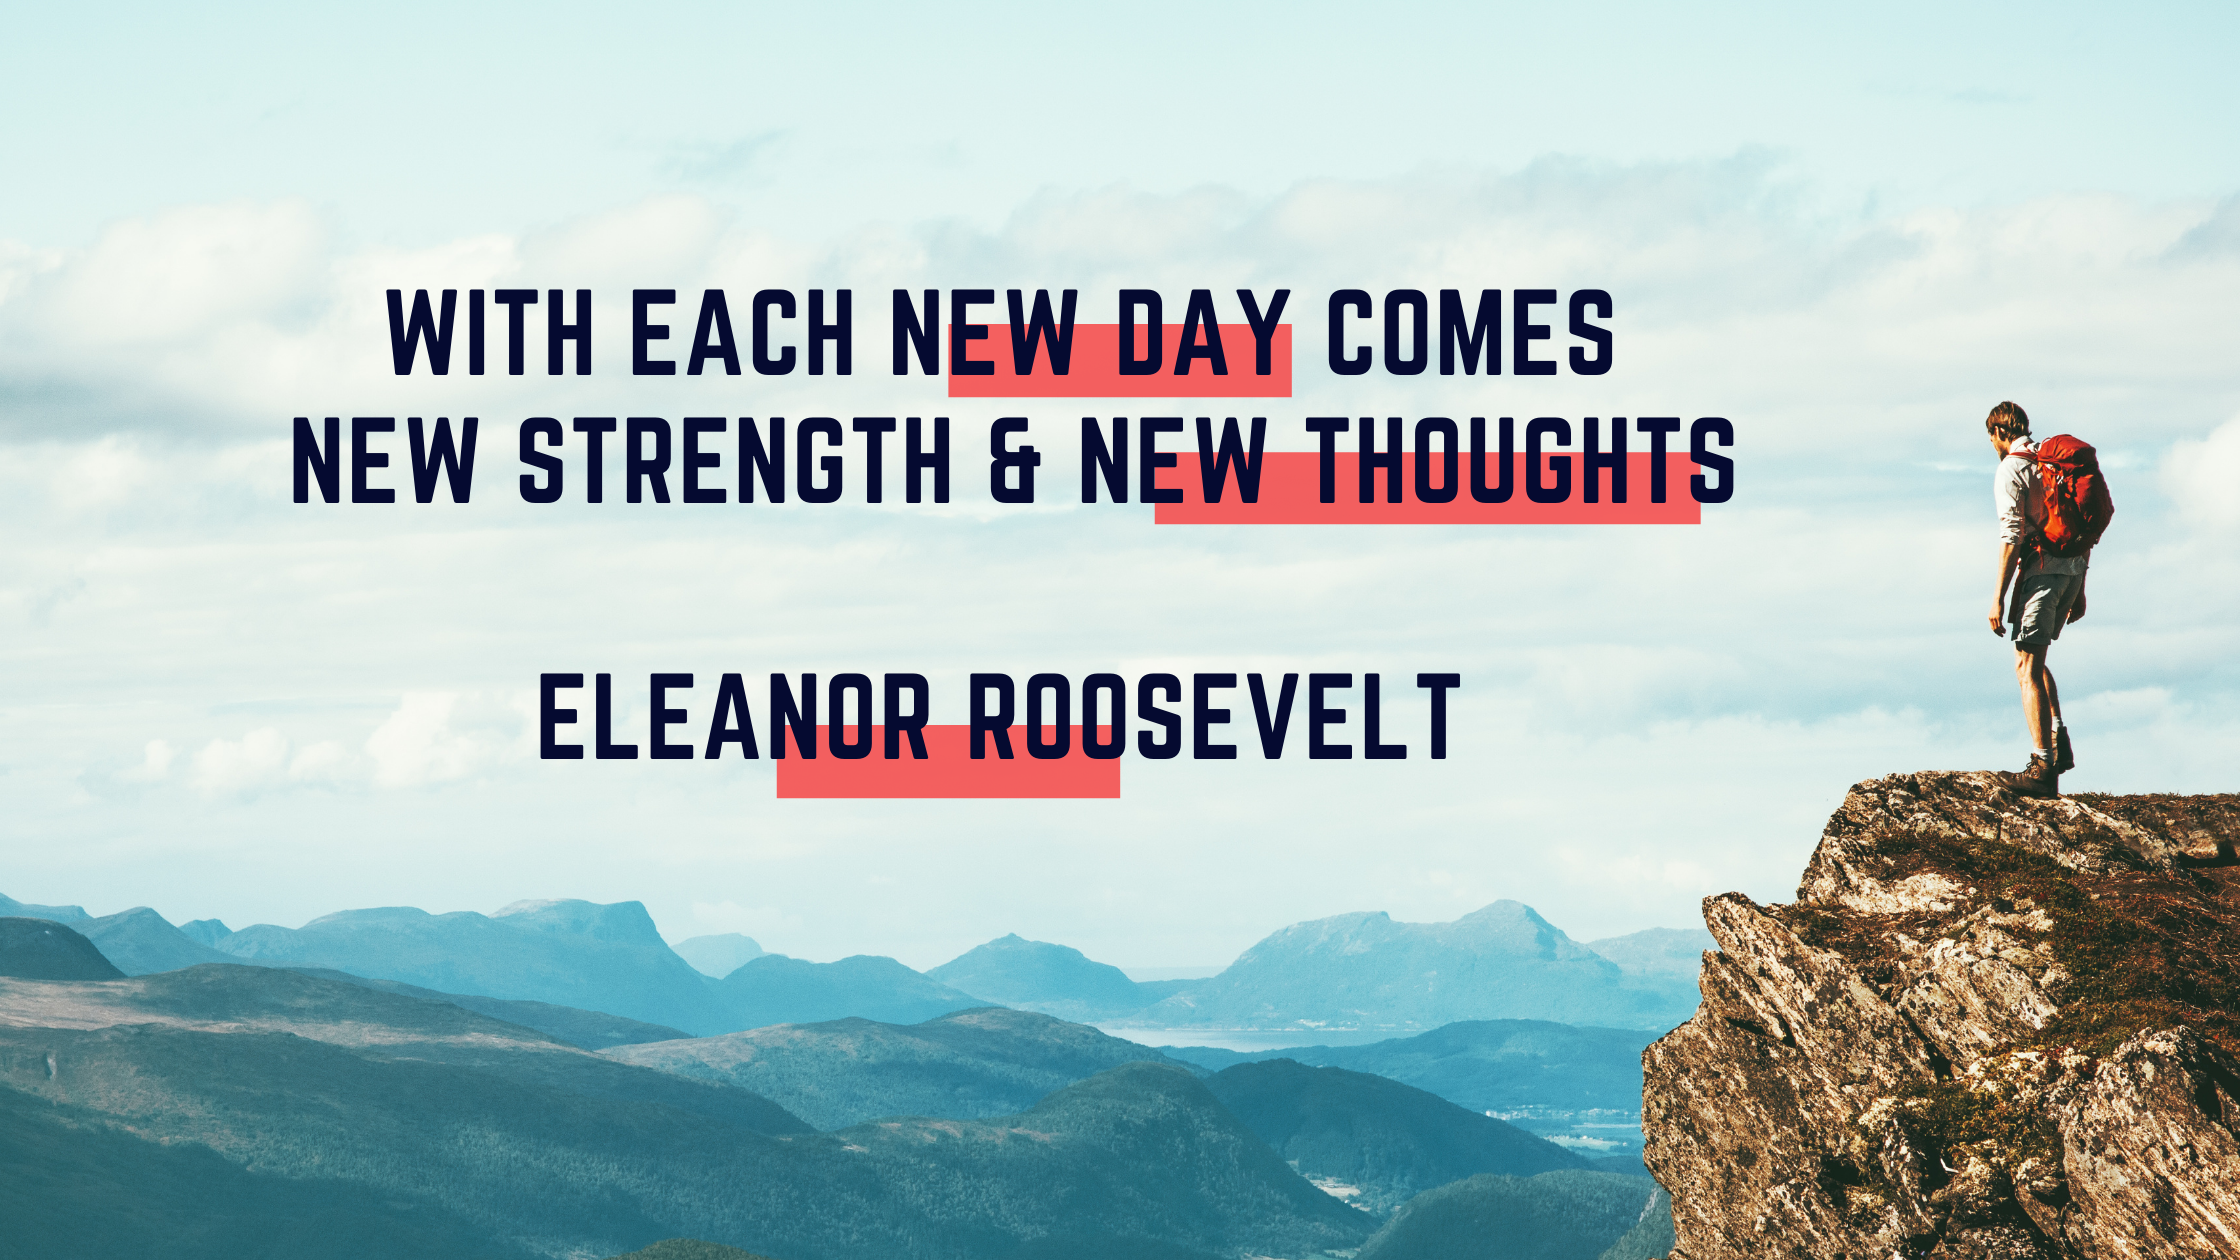 Finding New Strength & New Thoughts ala Mama Roosevelt